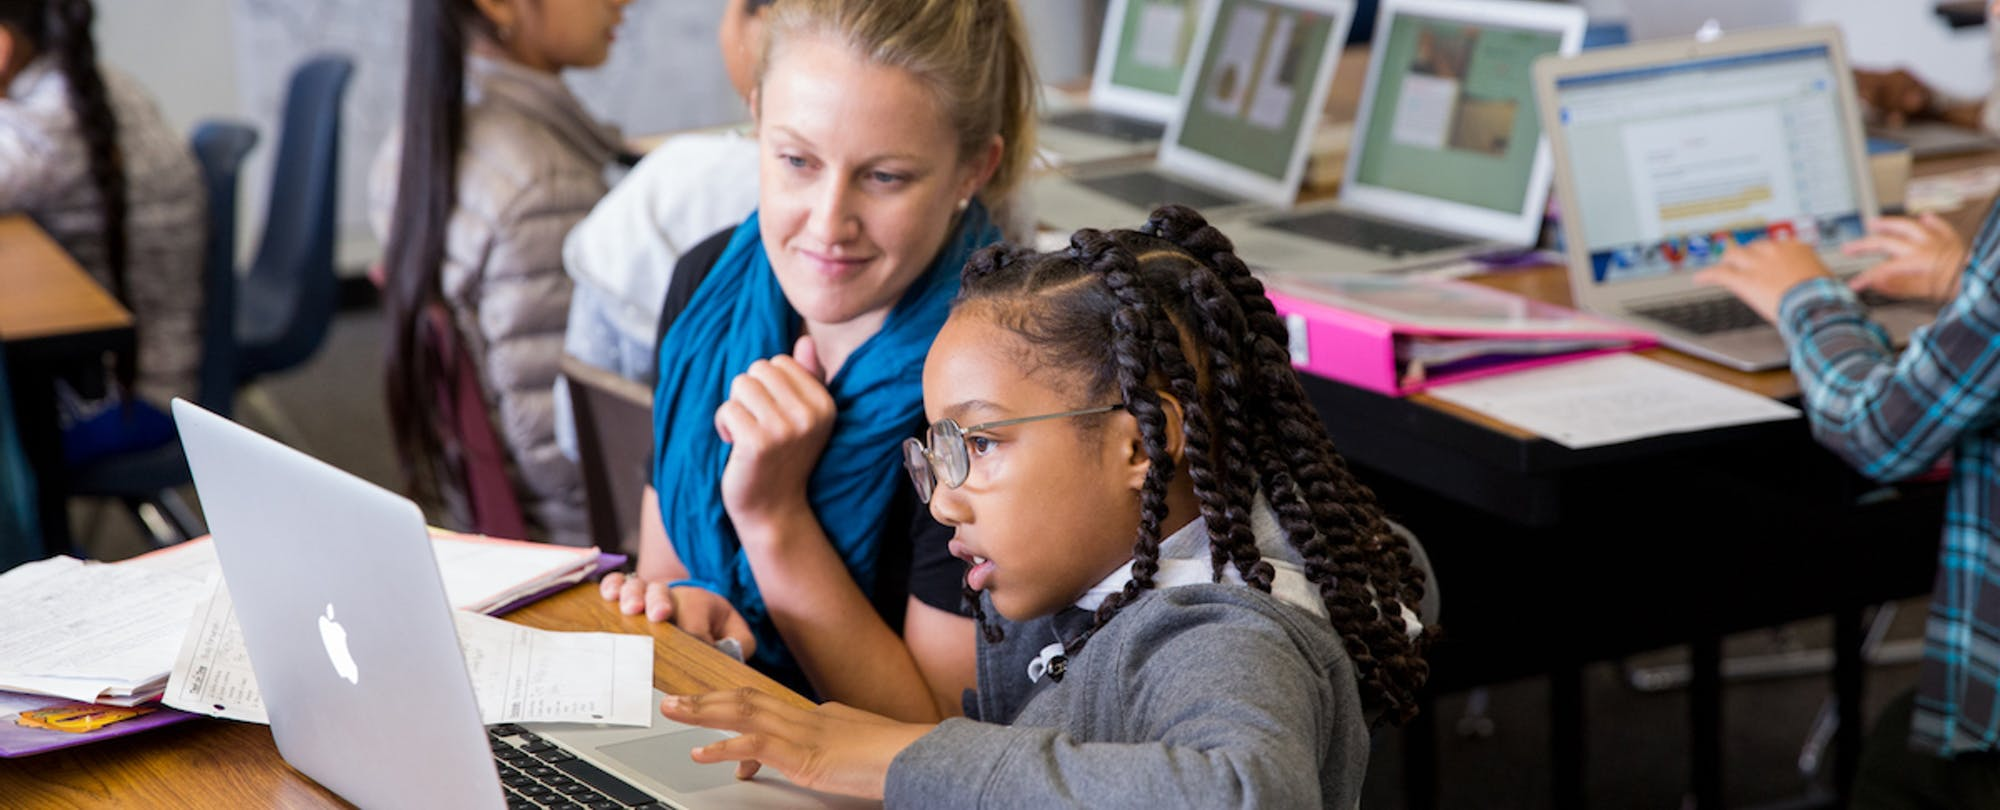 Early Learning Faces Obstacles and Inequities—Here's How Edtech Can Help